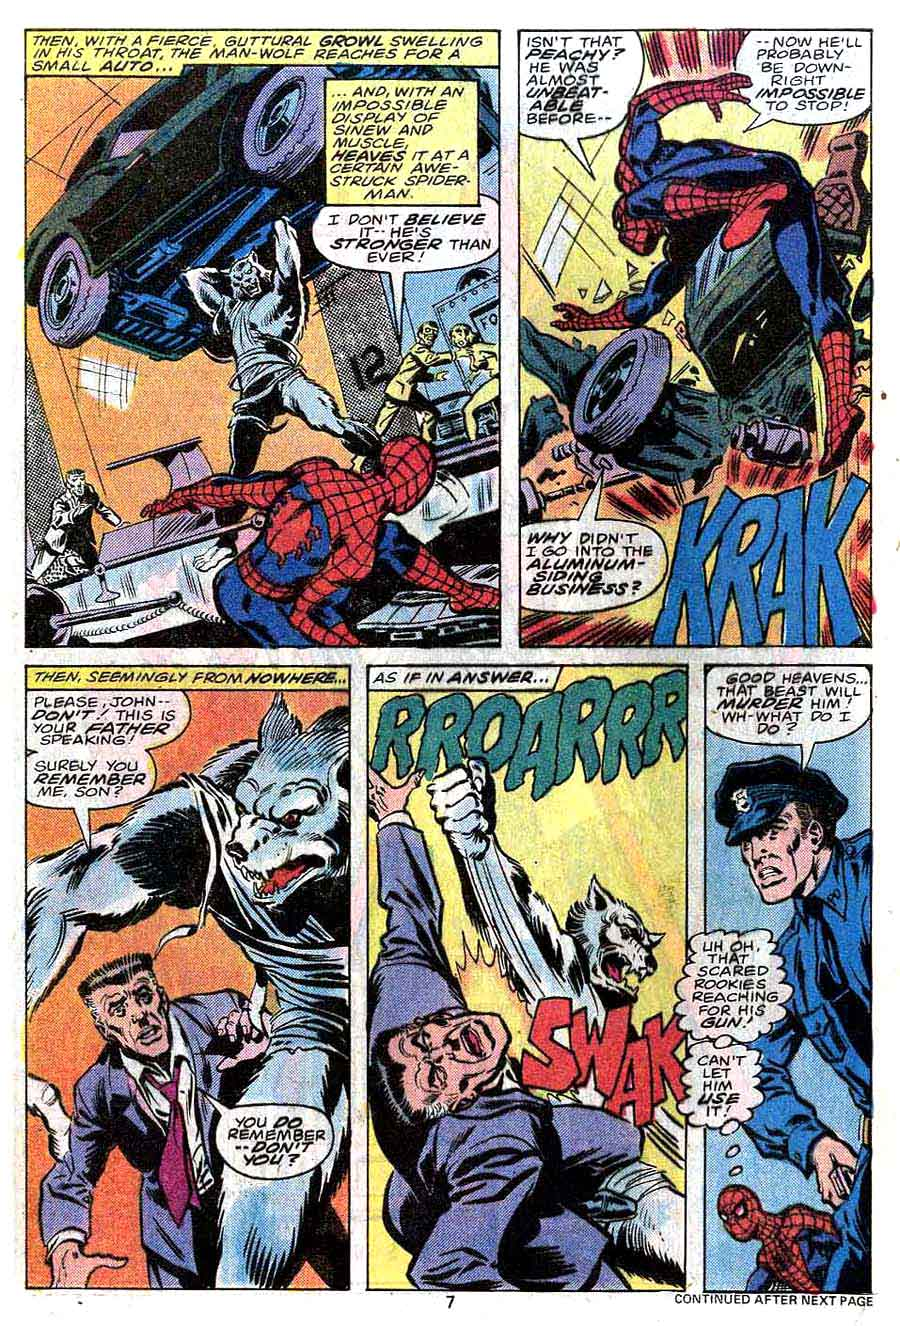 Amazing Spider-Man v1 #190 marvel comic book page art by John Byrne